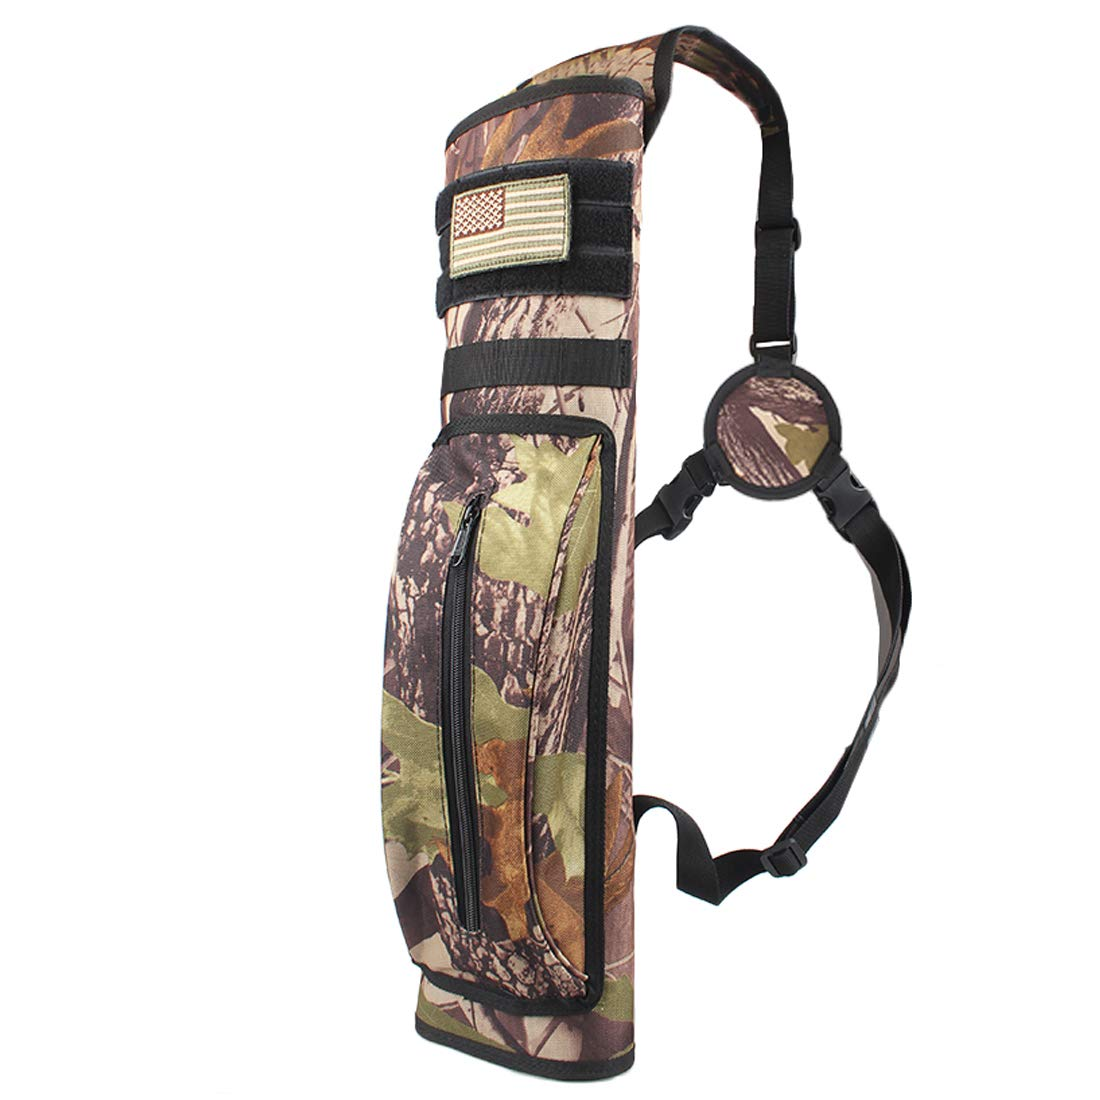 KRATARC Archery Multi-Function Back Arrow Quiver Shoulder Hanged Target Shooting Quiver for Arrows (Camo (for Right-Handed)) by KRATARC